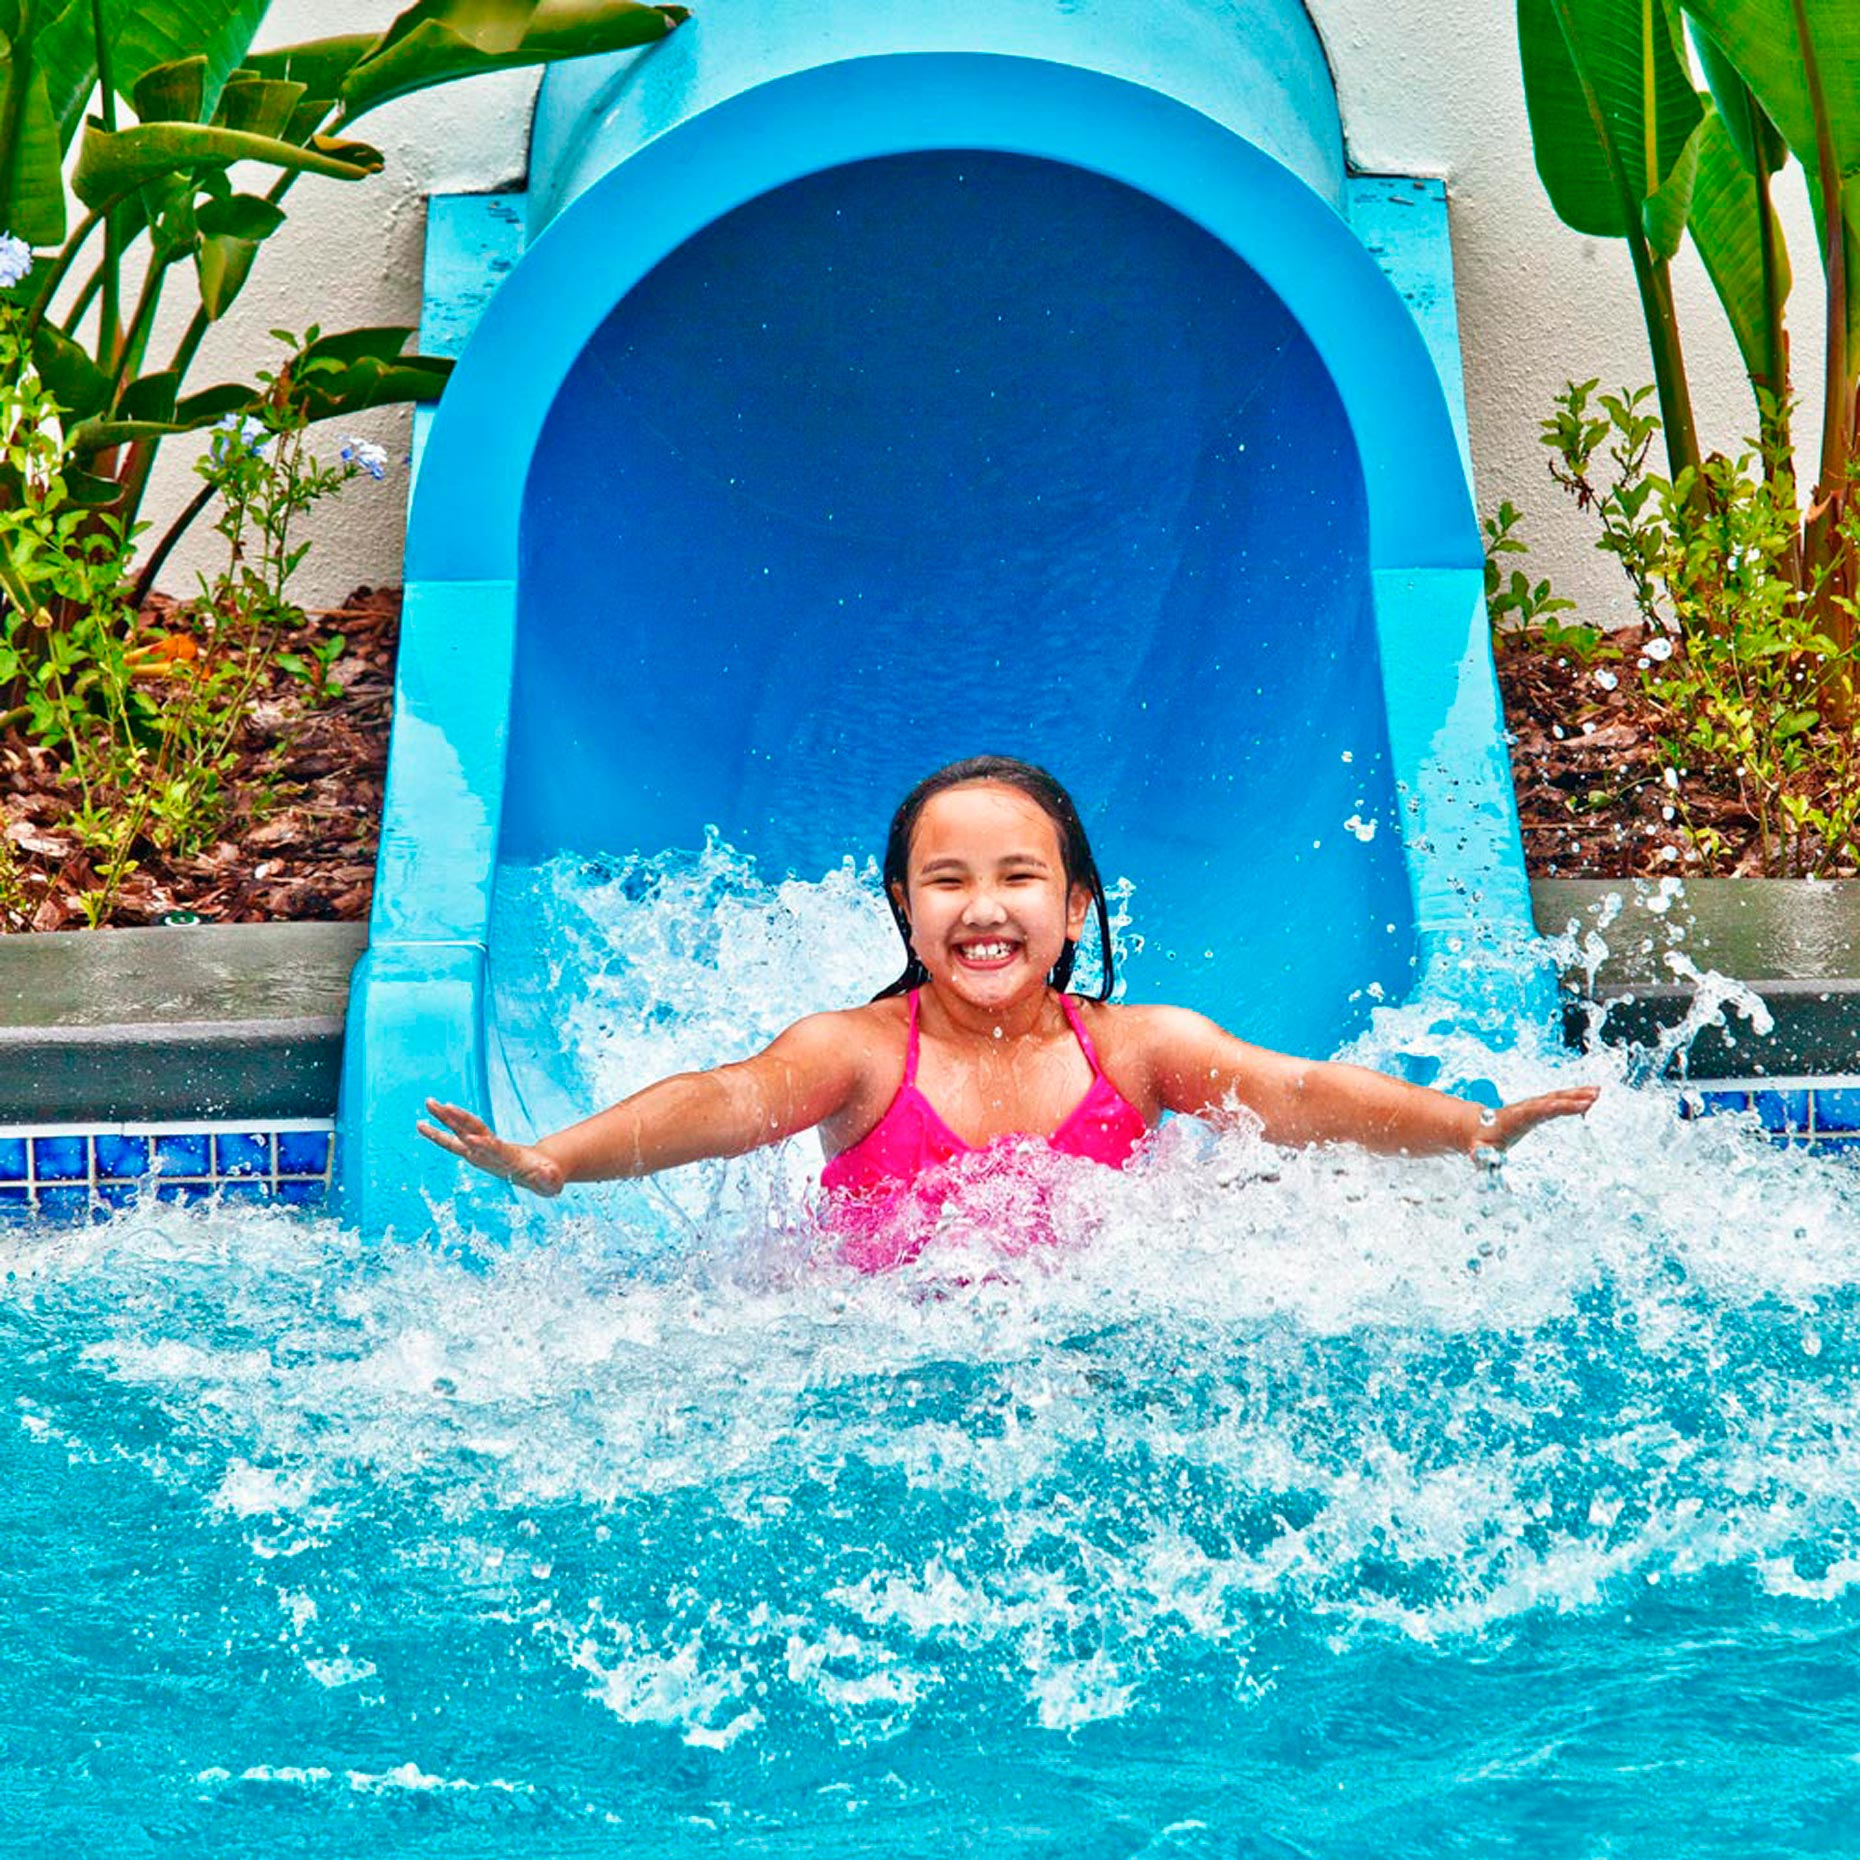 Lifestyle Photography | Hotel & Resort Photographer|Girl on Pool slide